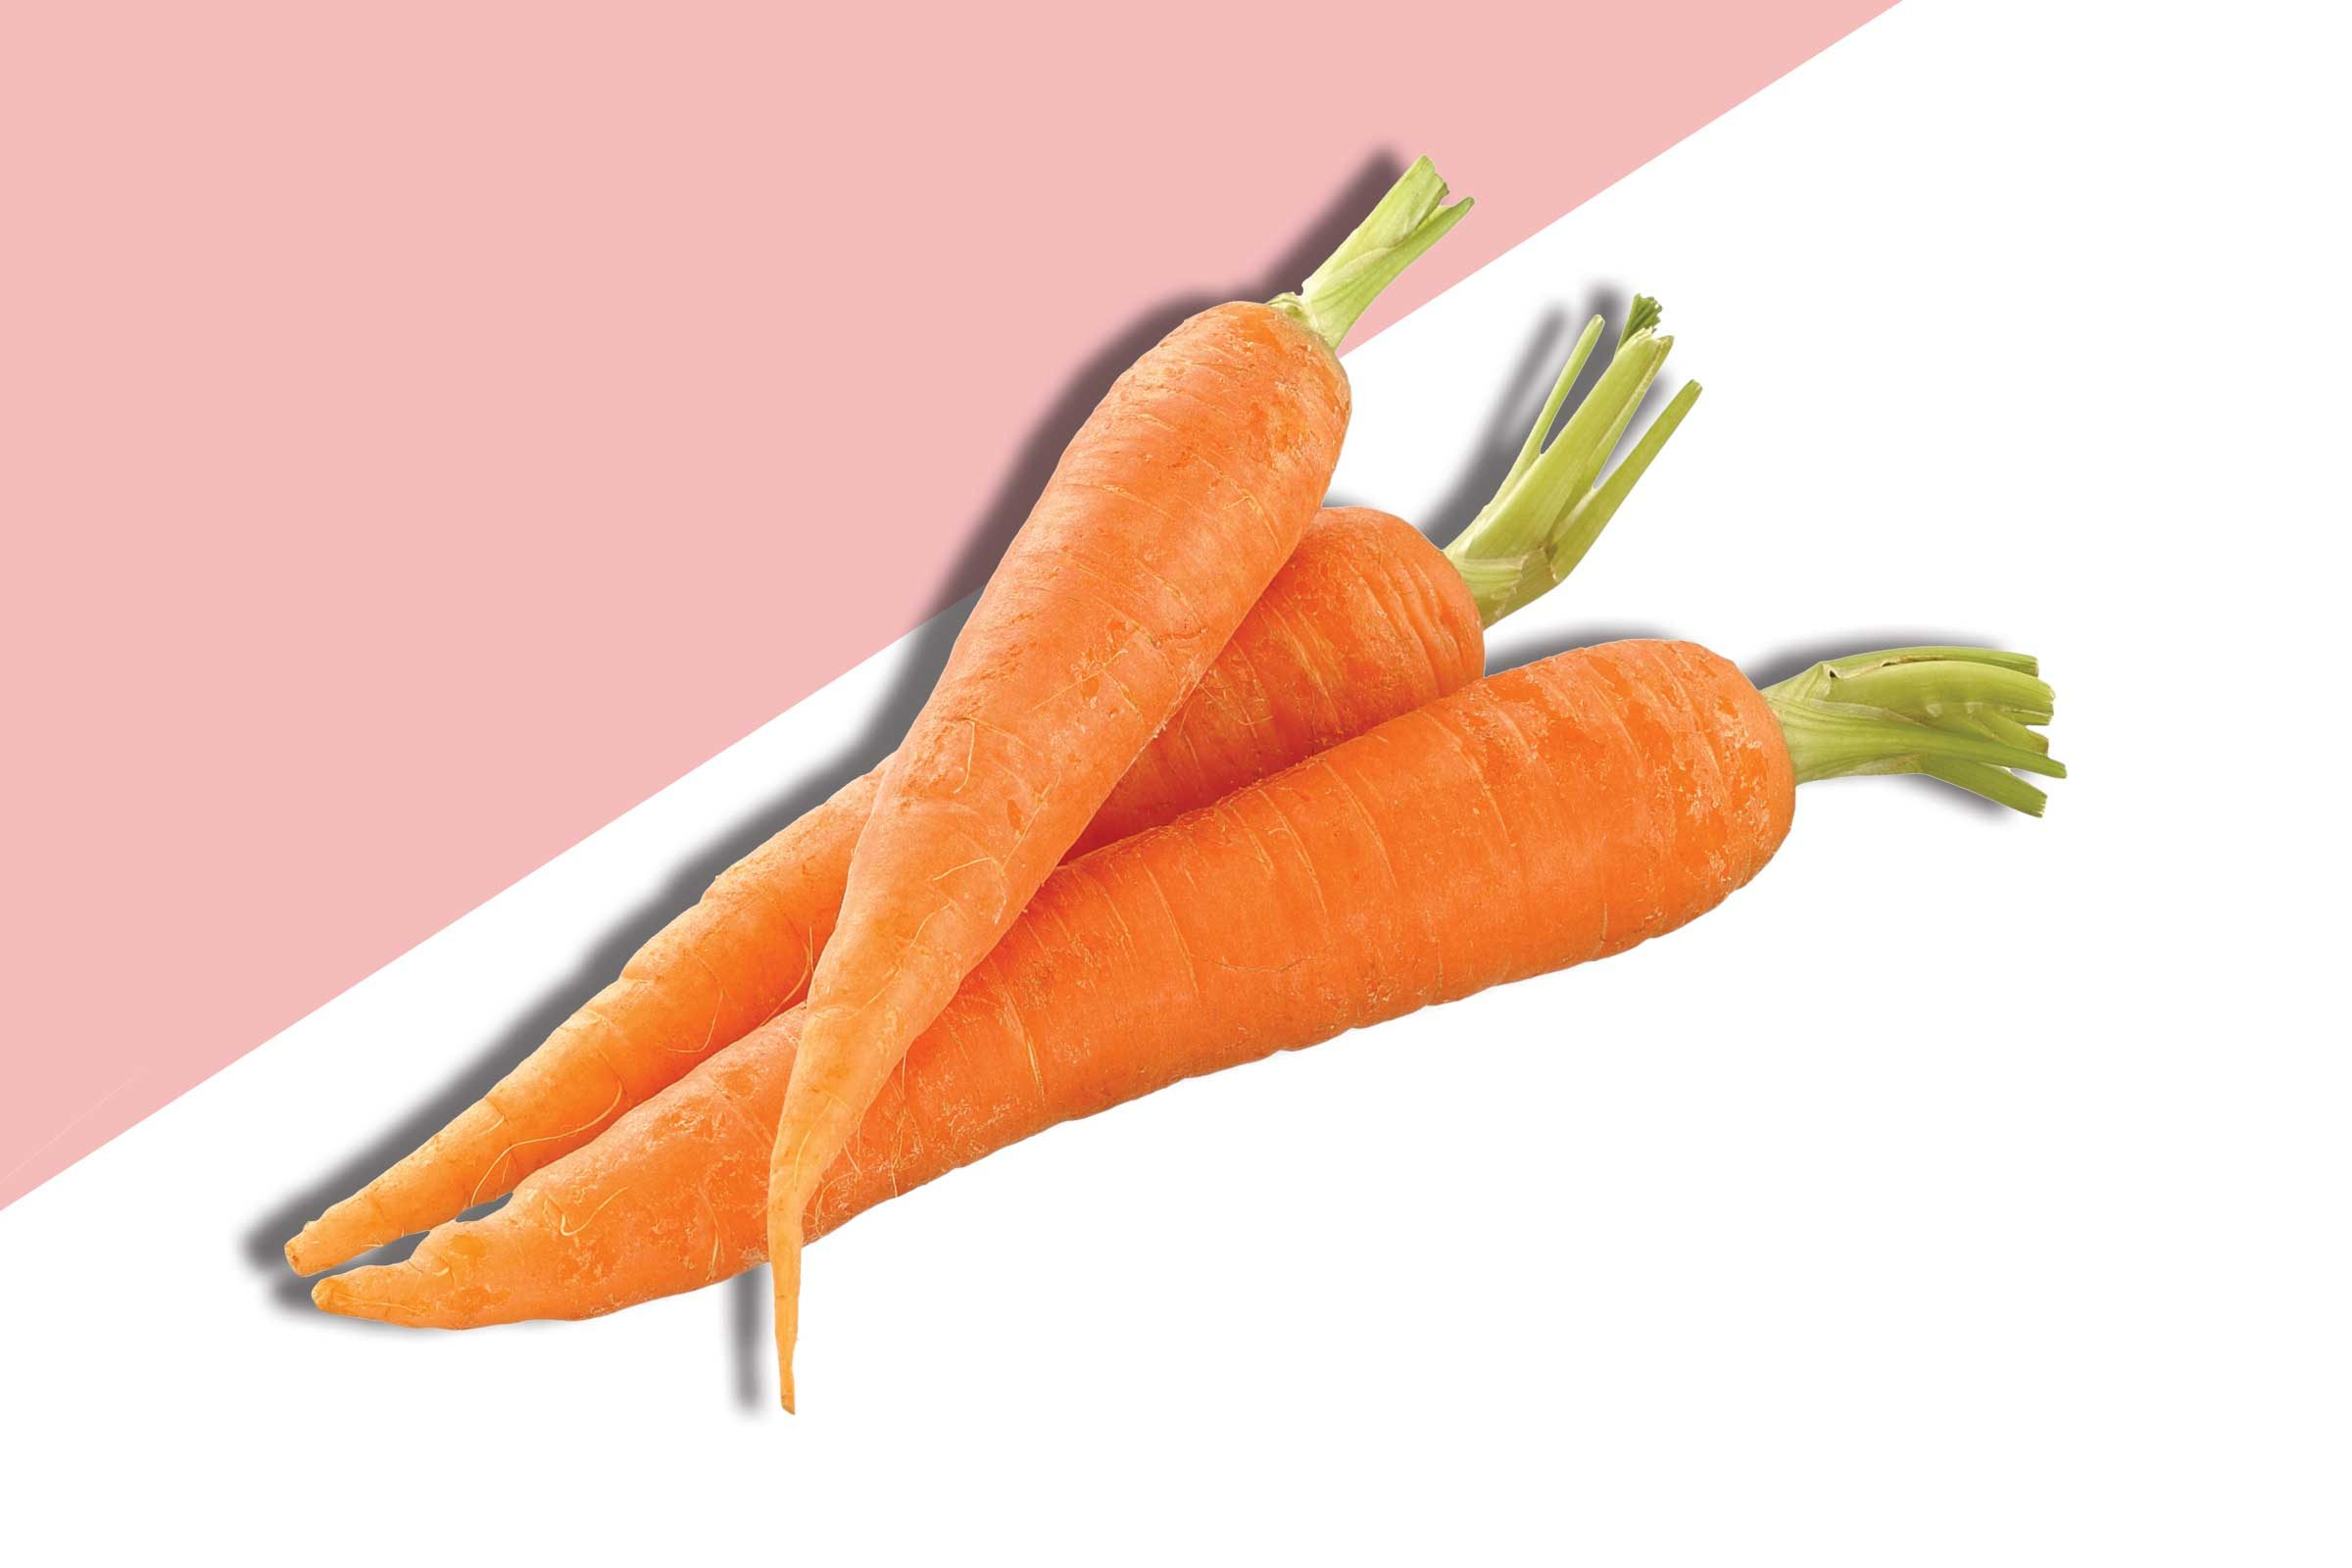 Carrots and Other Vitamin A-Rich Foods